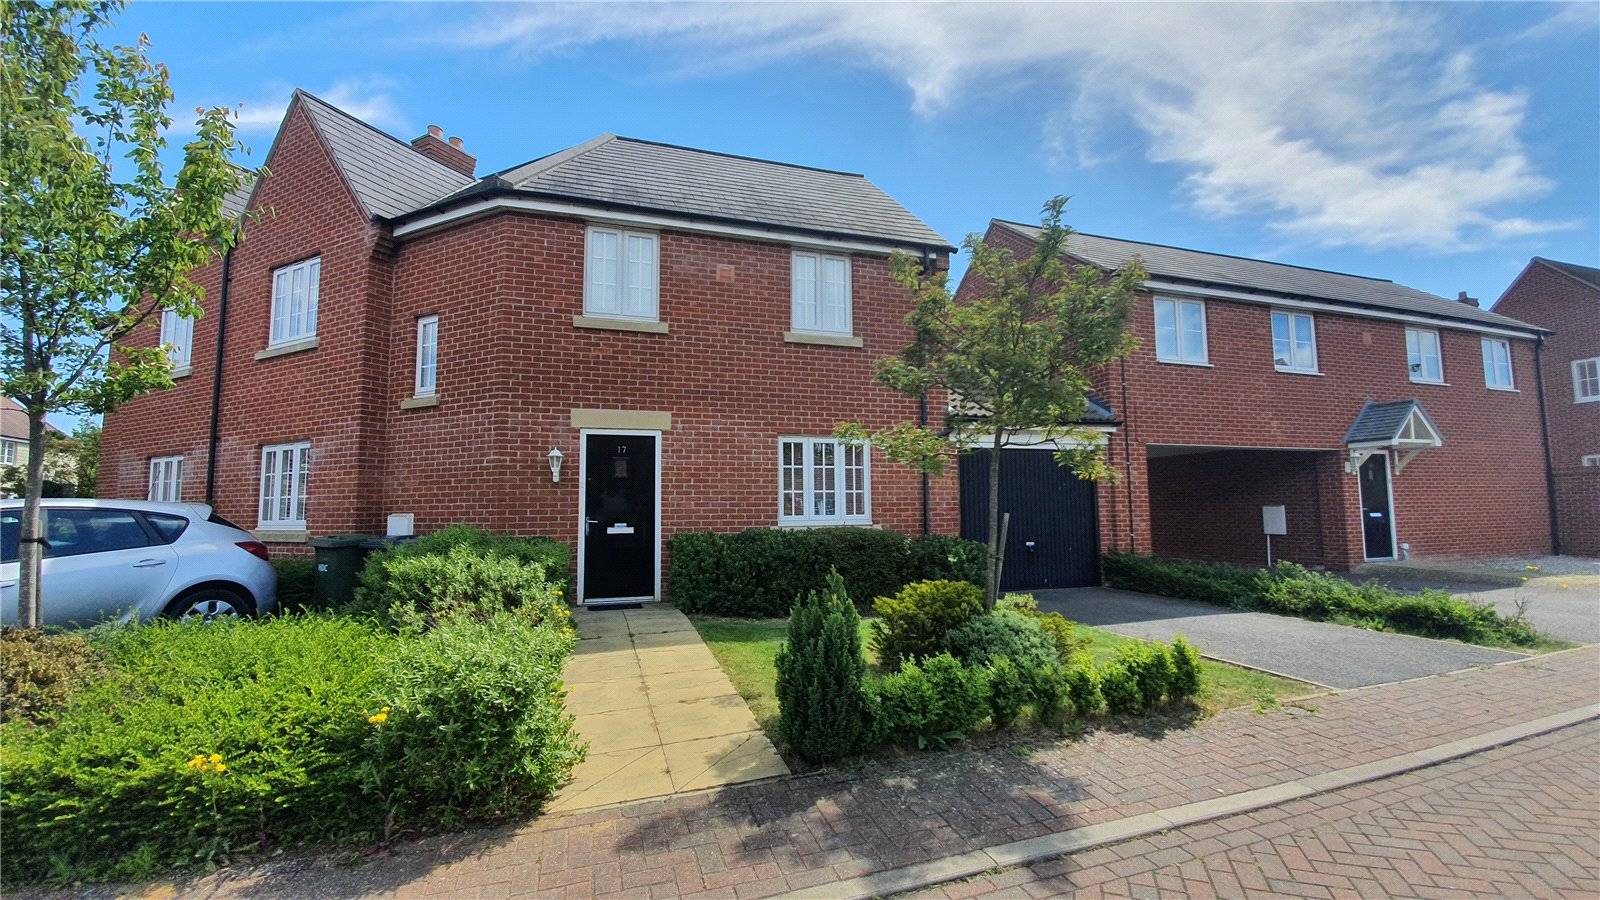 3 bed house for sale in St. Neots, PE19 6BA - Property Image 1